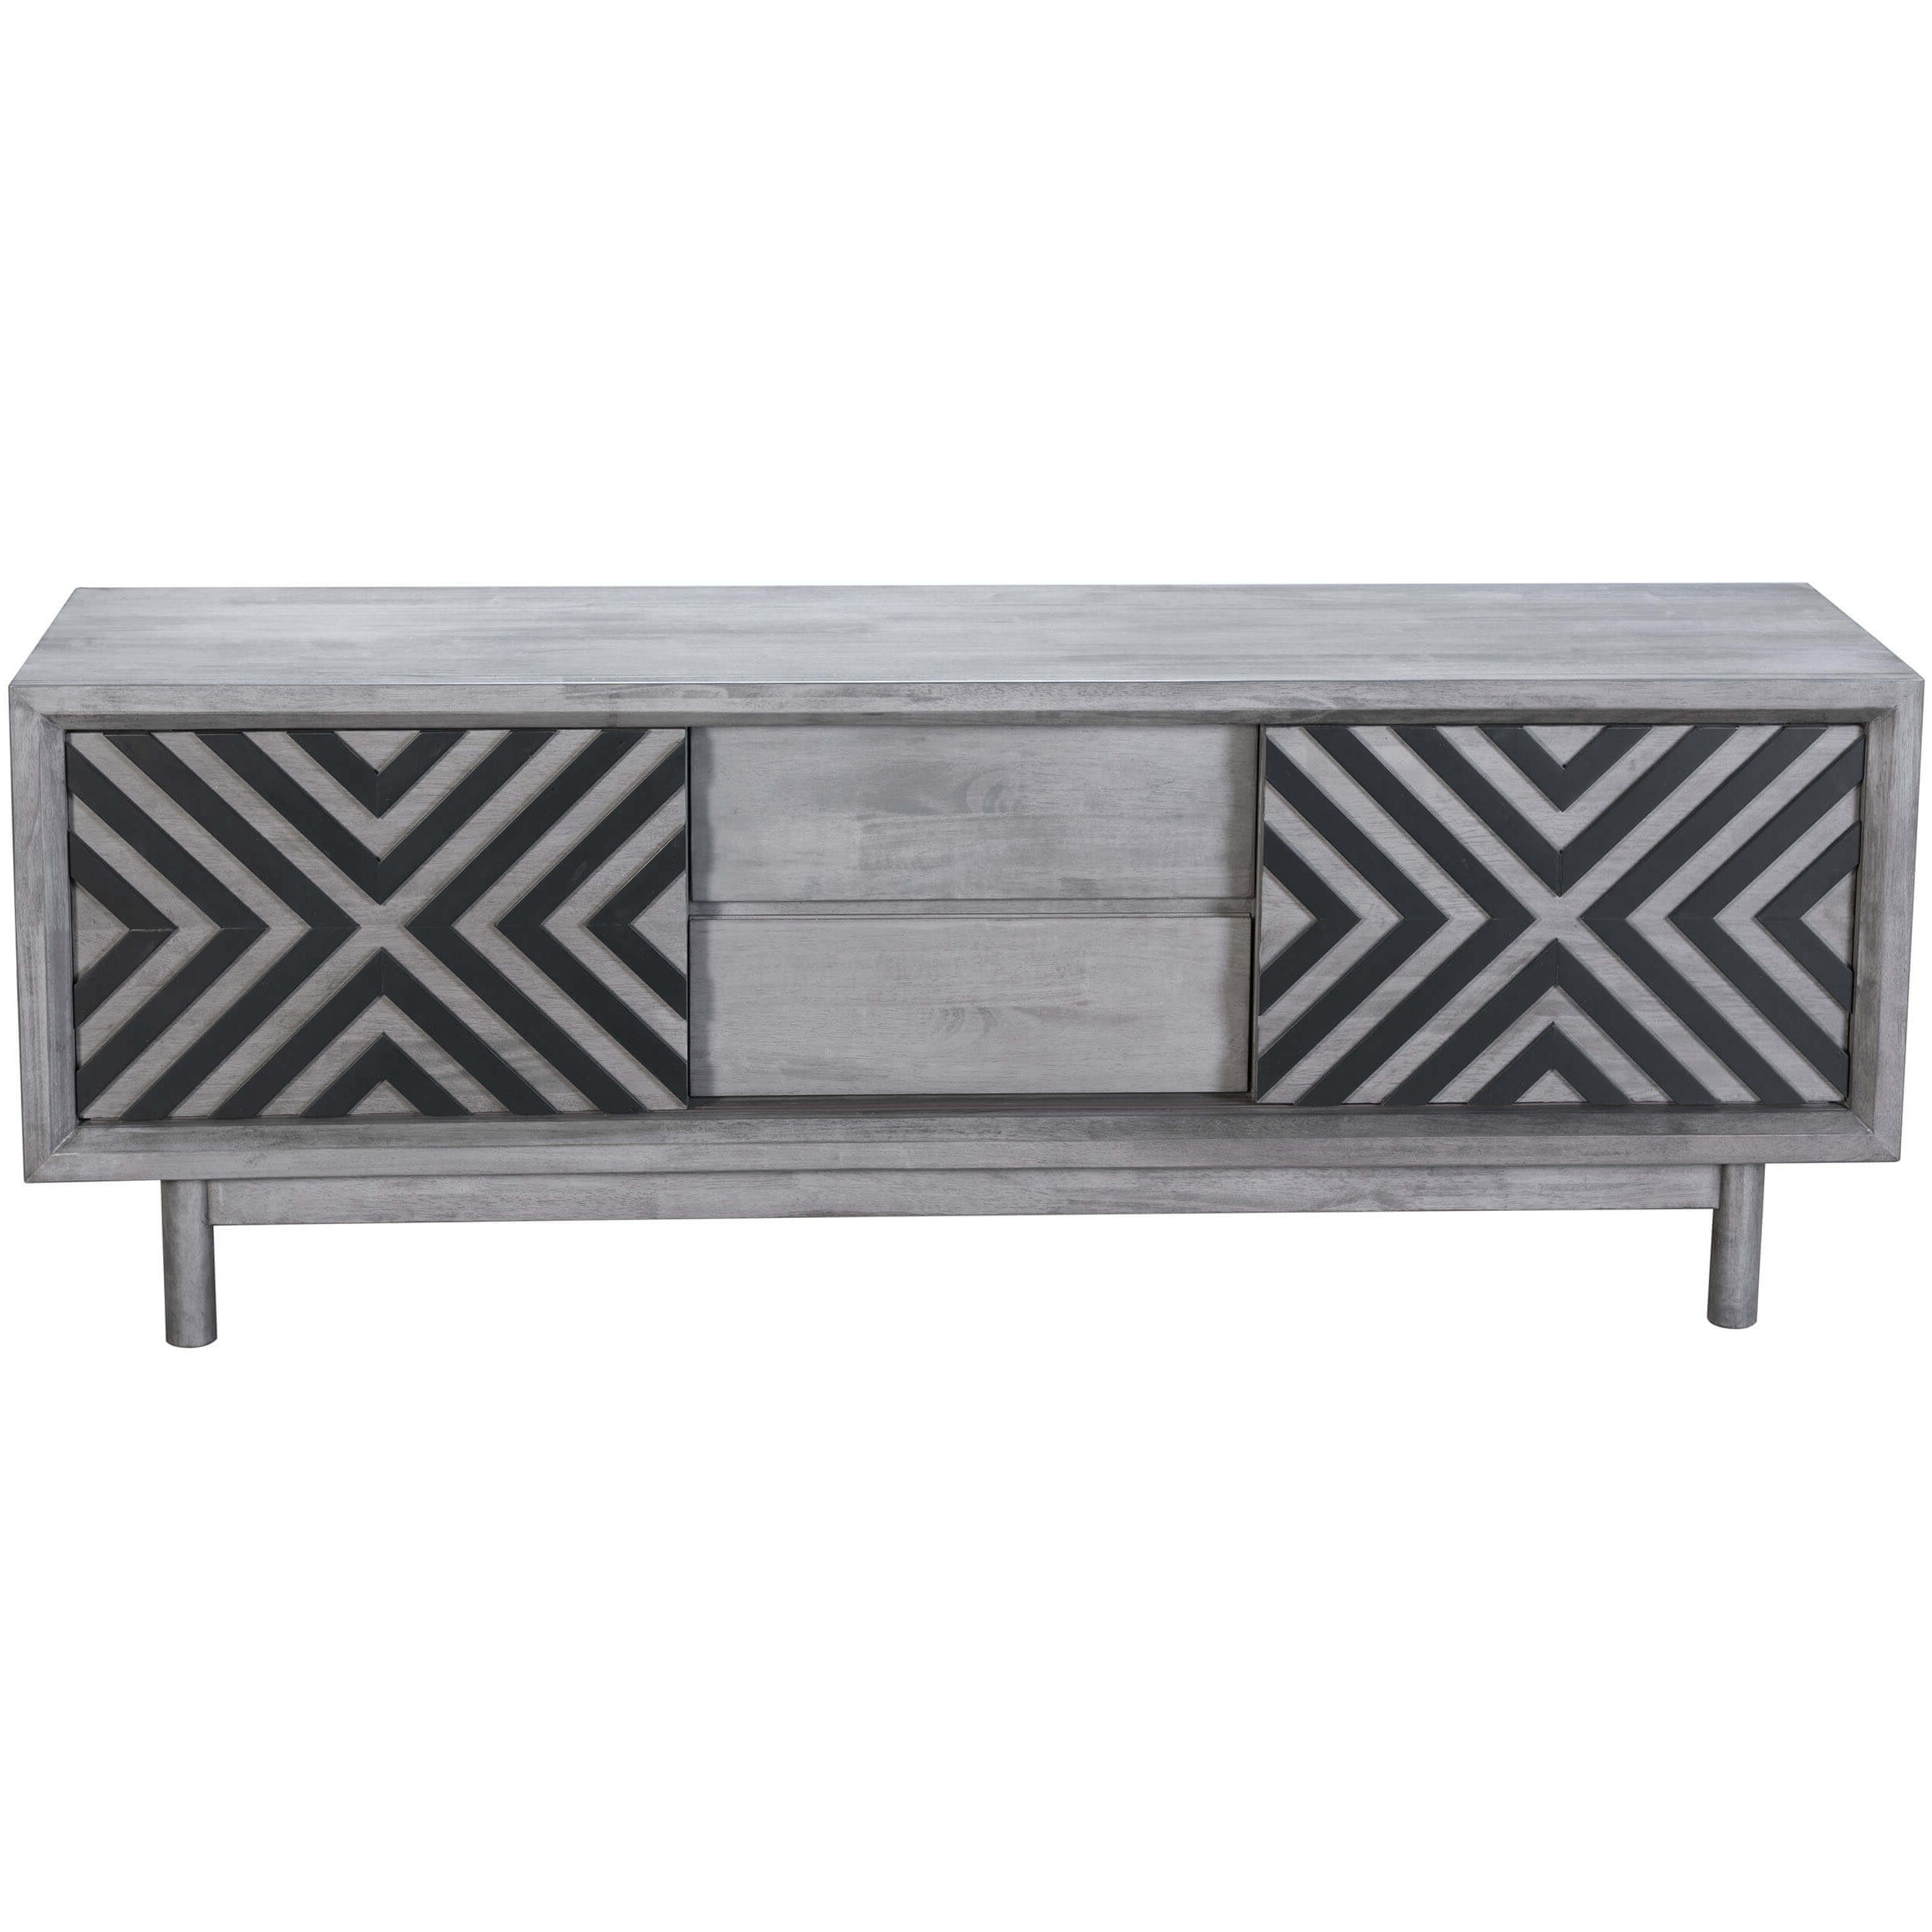 Raven Tv Stand, Old Gray – Zuo Modern – Furniture Inside Raven Grey Tv Stands (View 2 of 20)